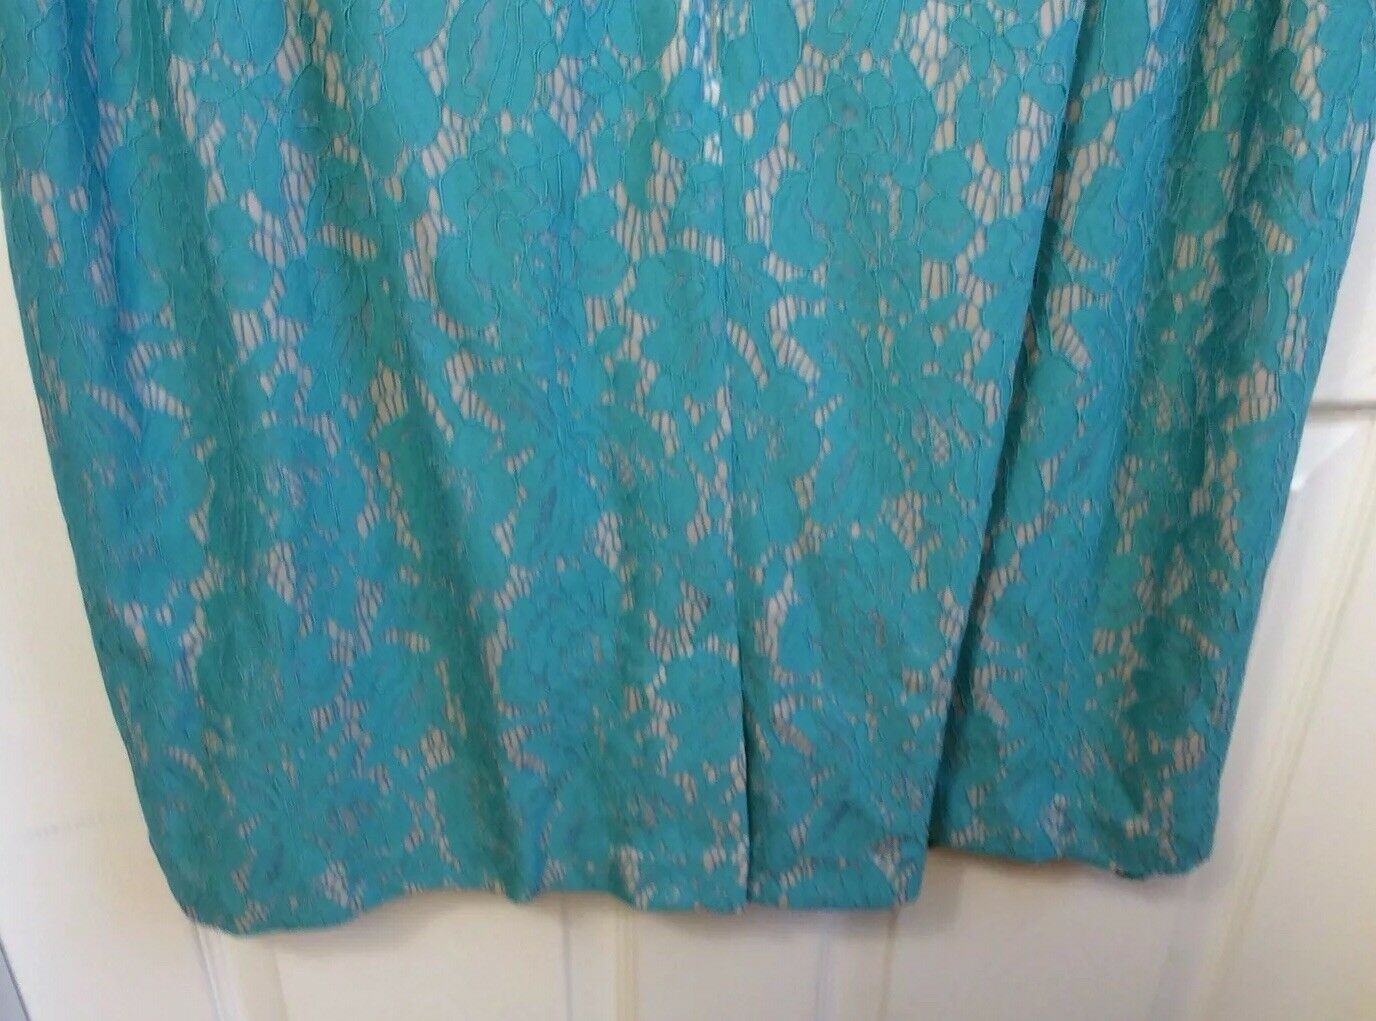 eda72e73654 ... Jessica Howard Woman s Plus Size 24W Lace turquoise dress Bell Bell  Bell Sleeves 112 NWT b62e1f ...